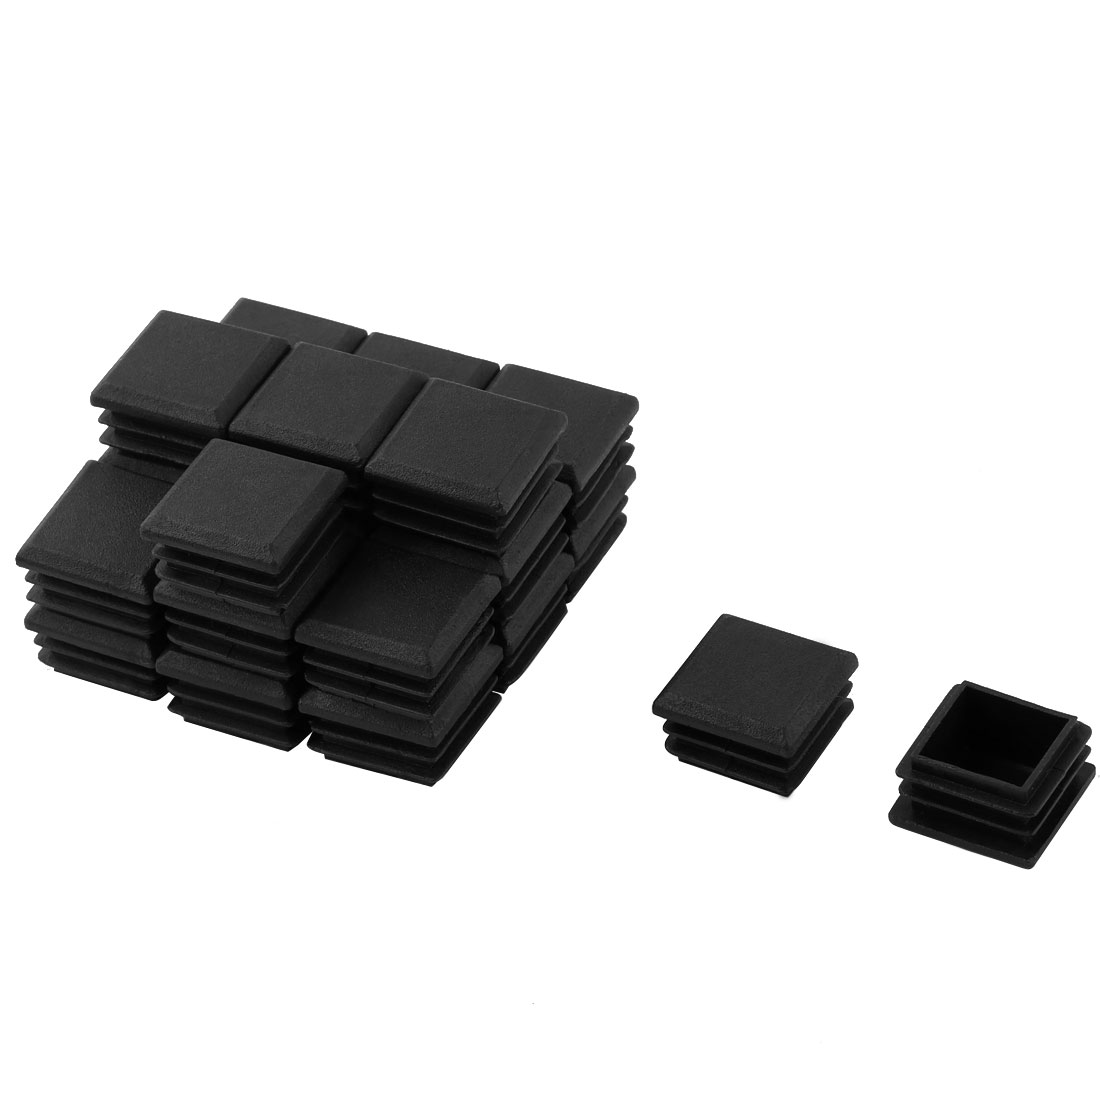 24 Pcs Black Plastic 25x25mm Square Pipe Blacking End Caps Tube Insert